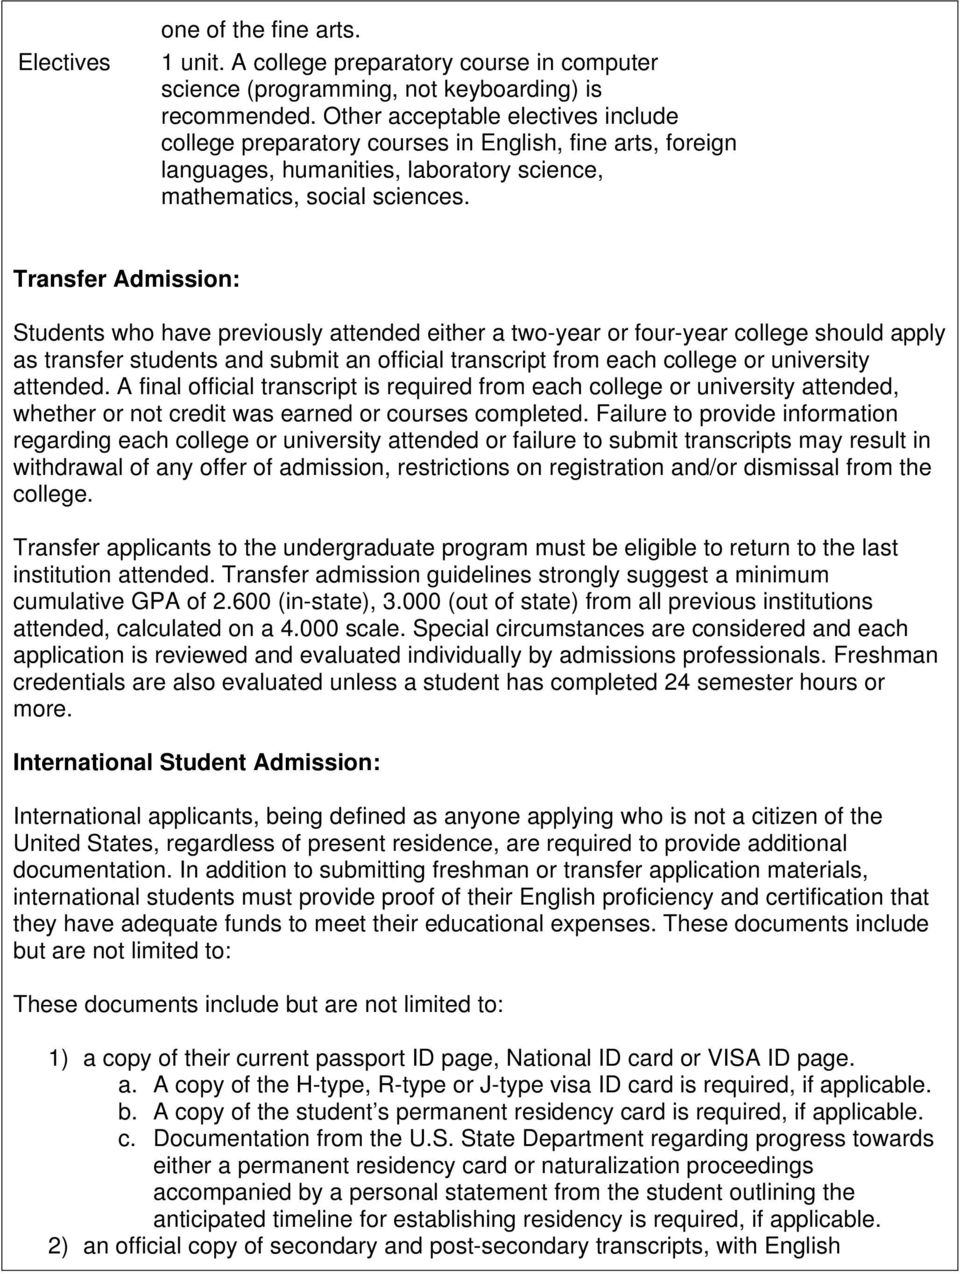 Transfer Admission: Students who have previously attended either a two-year or four-year college should apply as transfer students and submit an official transcript from each college or university